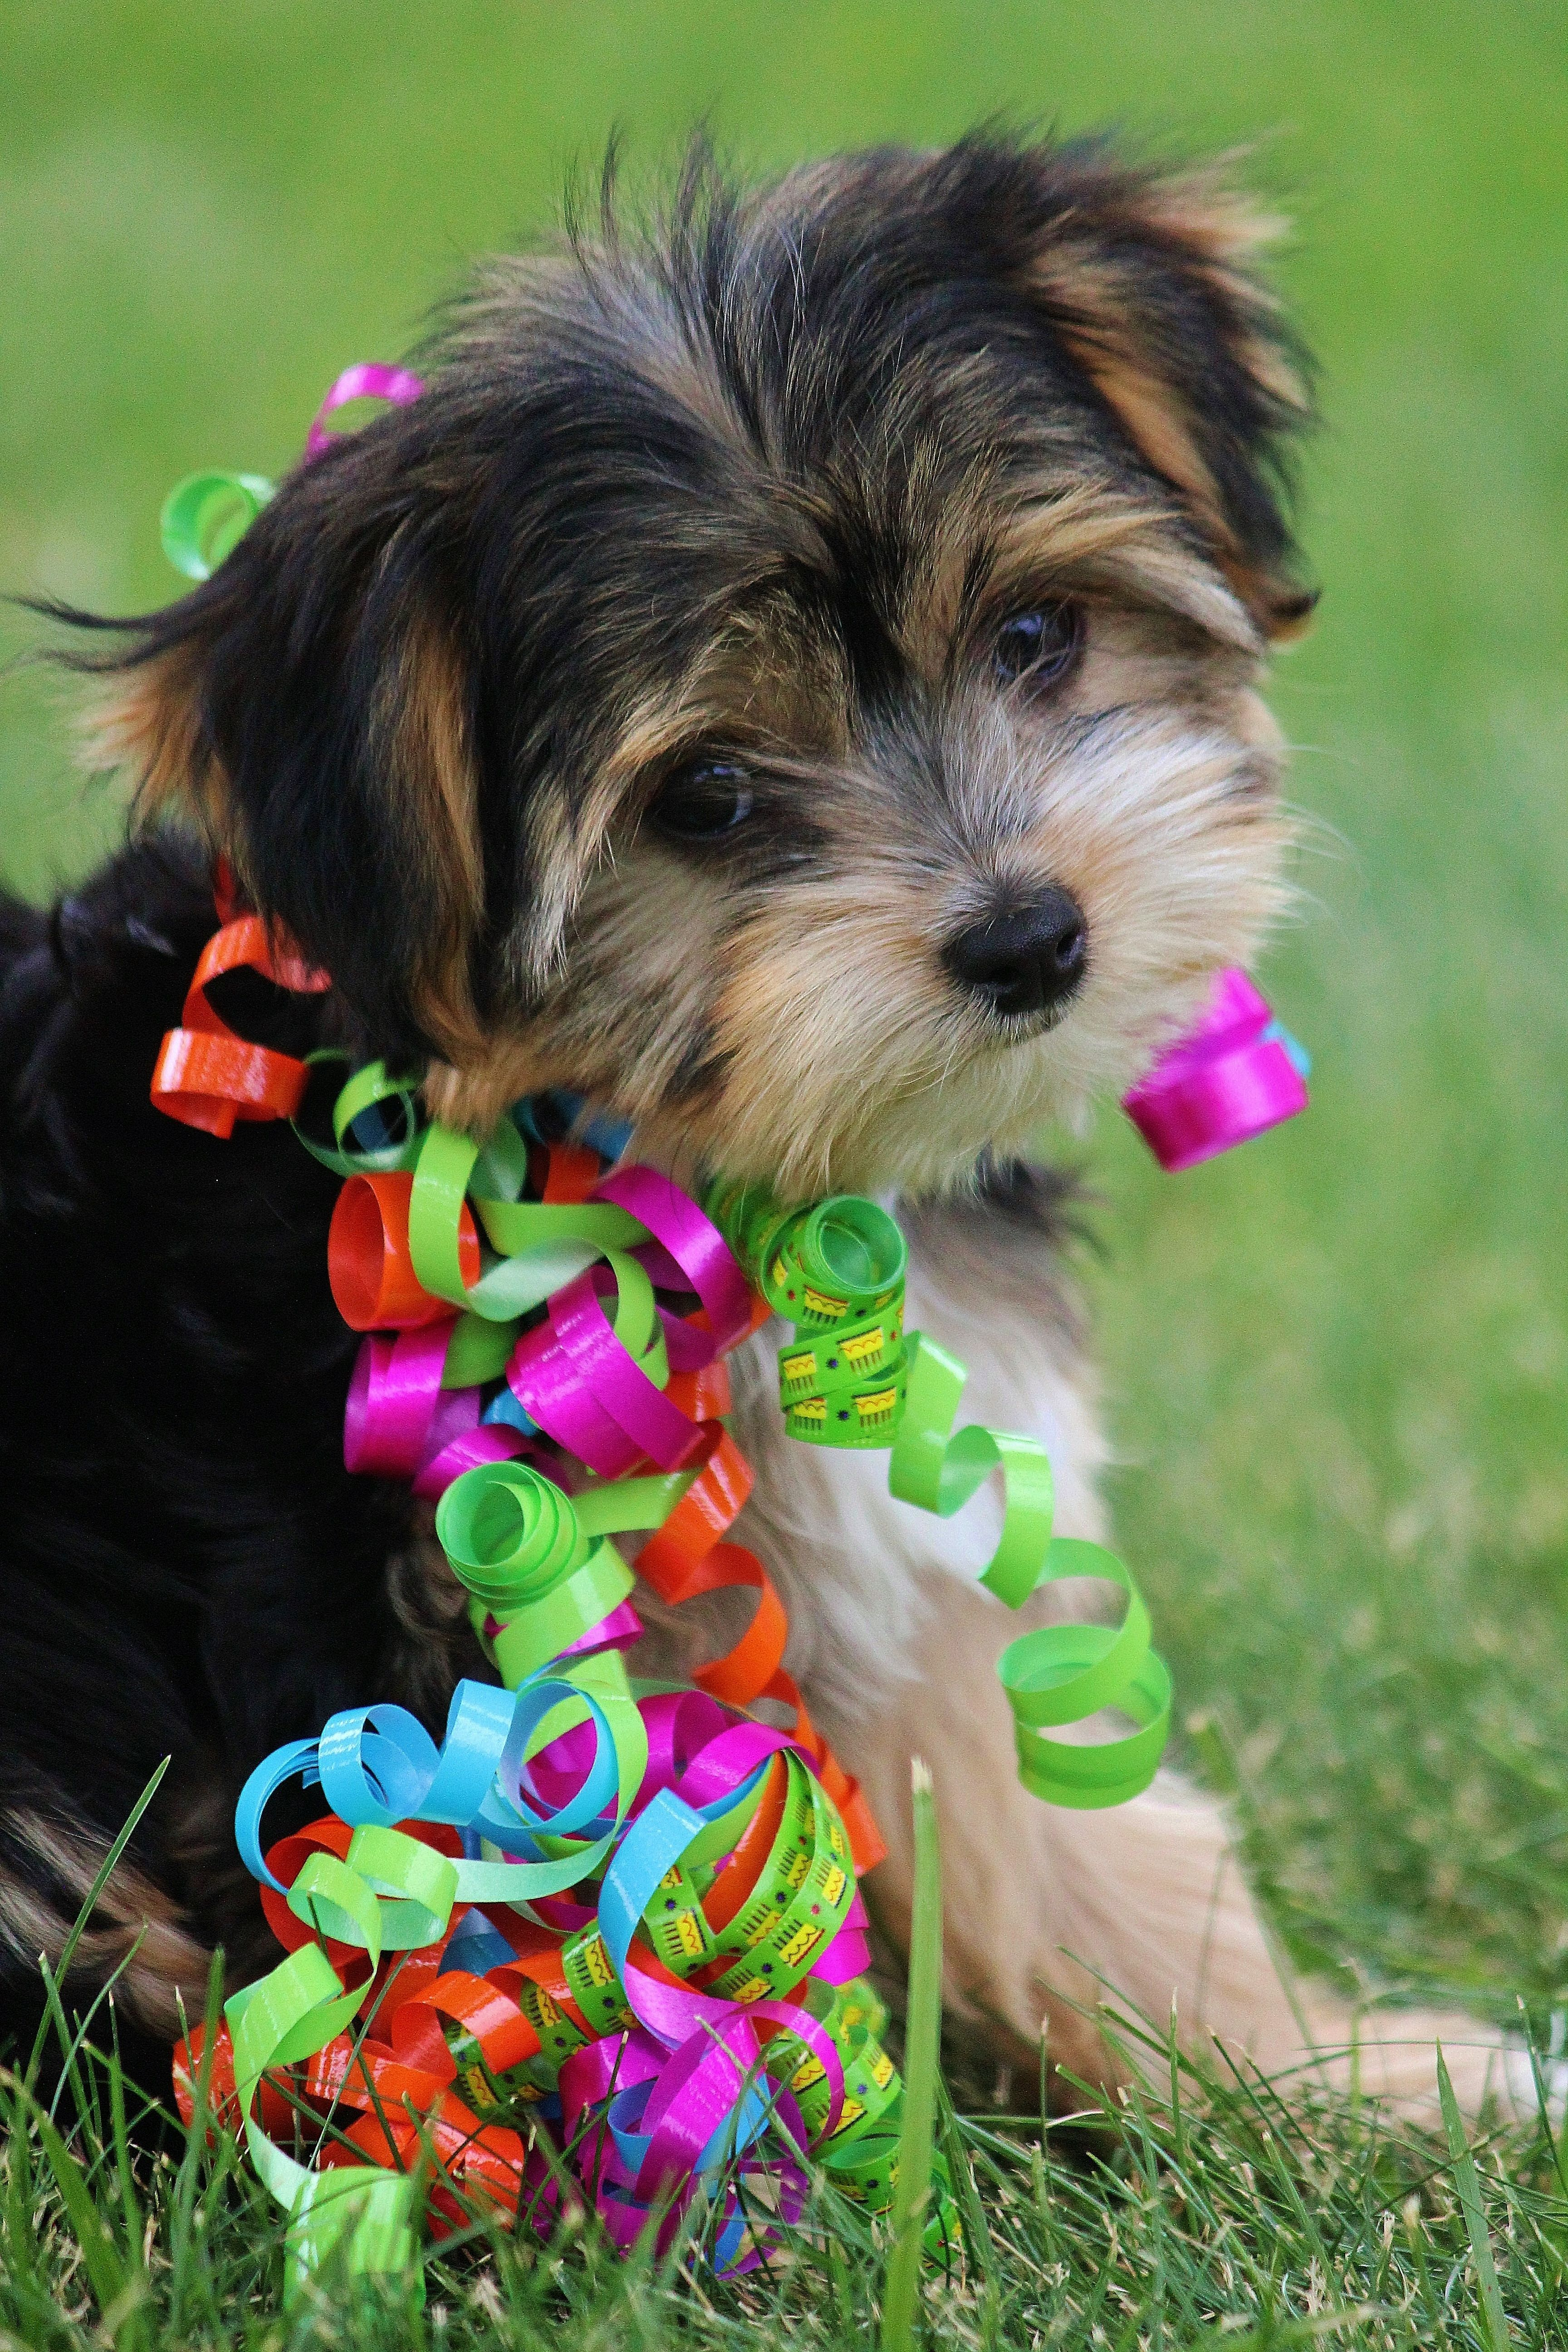 Aly Our Little Yorkie Wawa Yorkshire Terrier Mixed With Long Haired Chihuahua Pitbull Terrier Cute Animals Yorkie